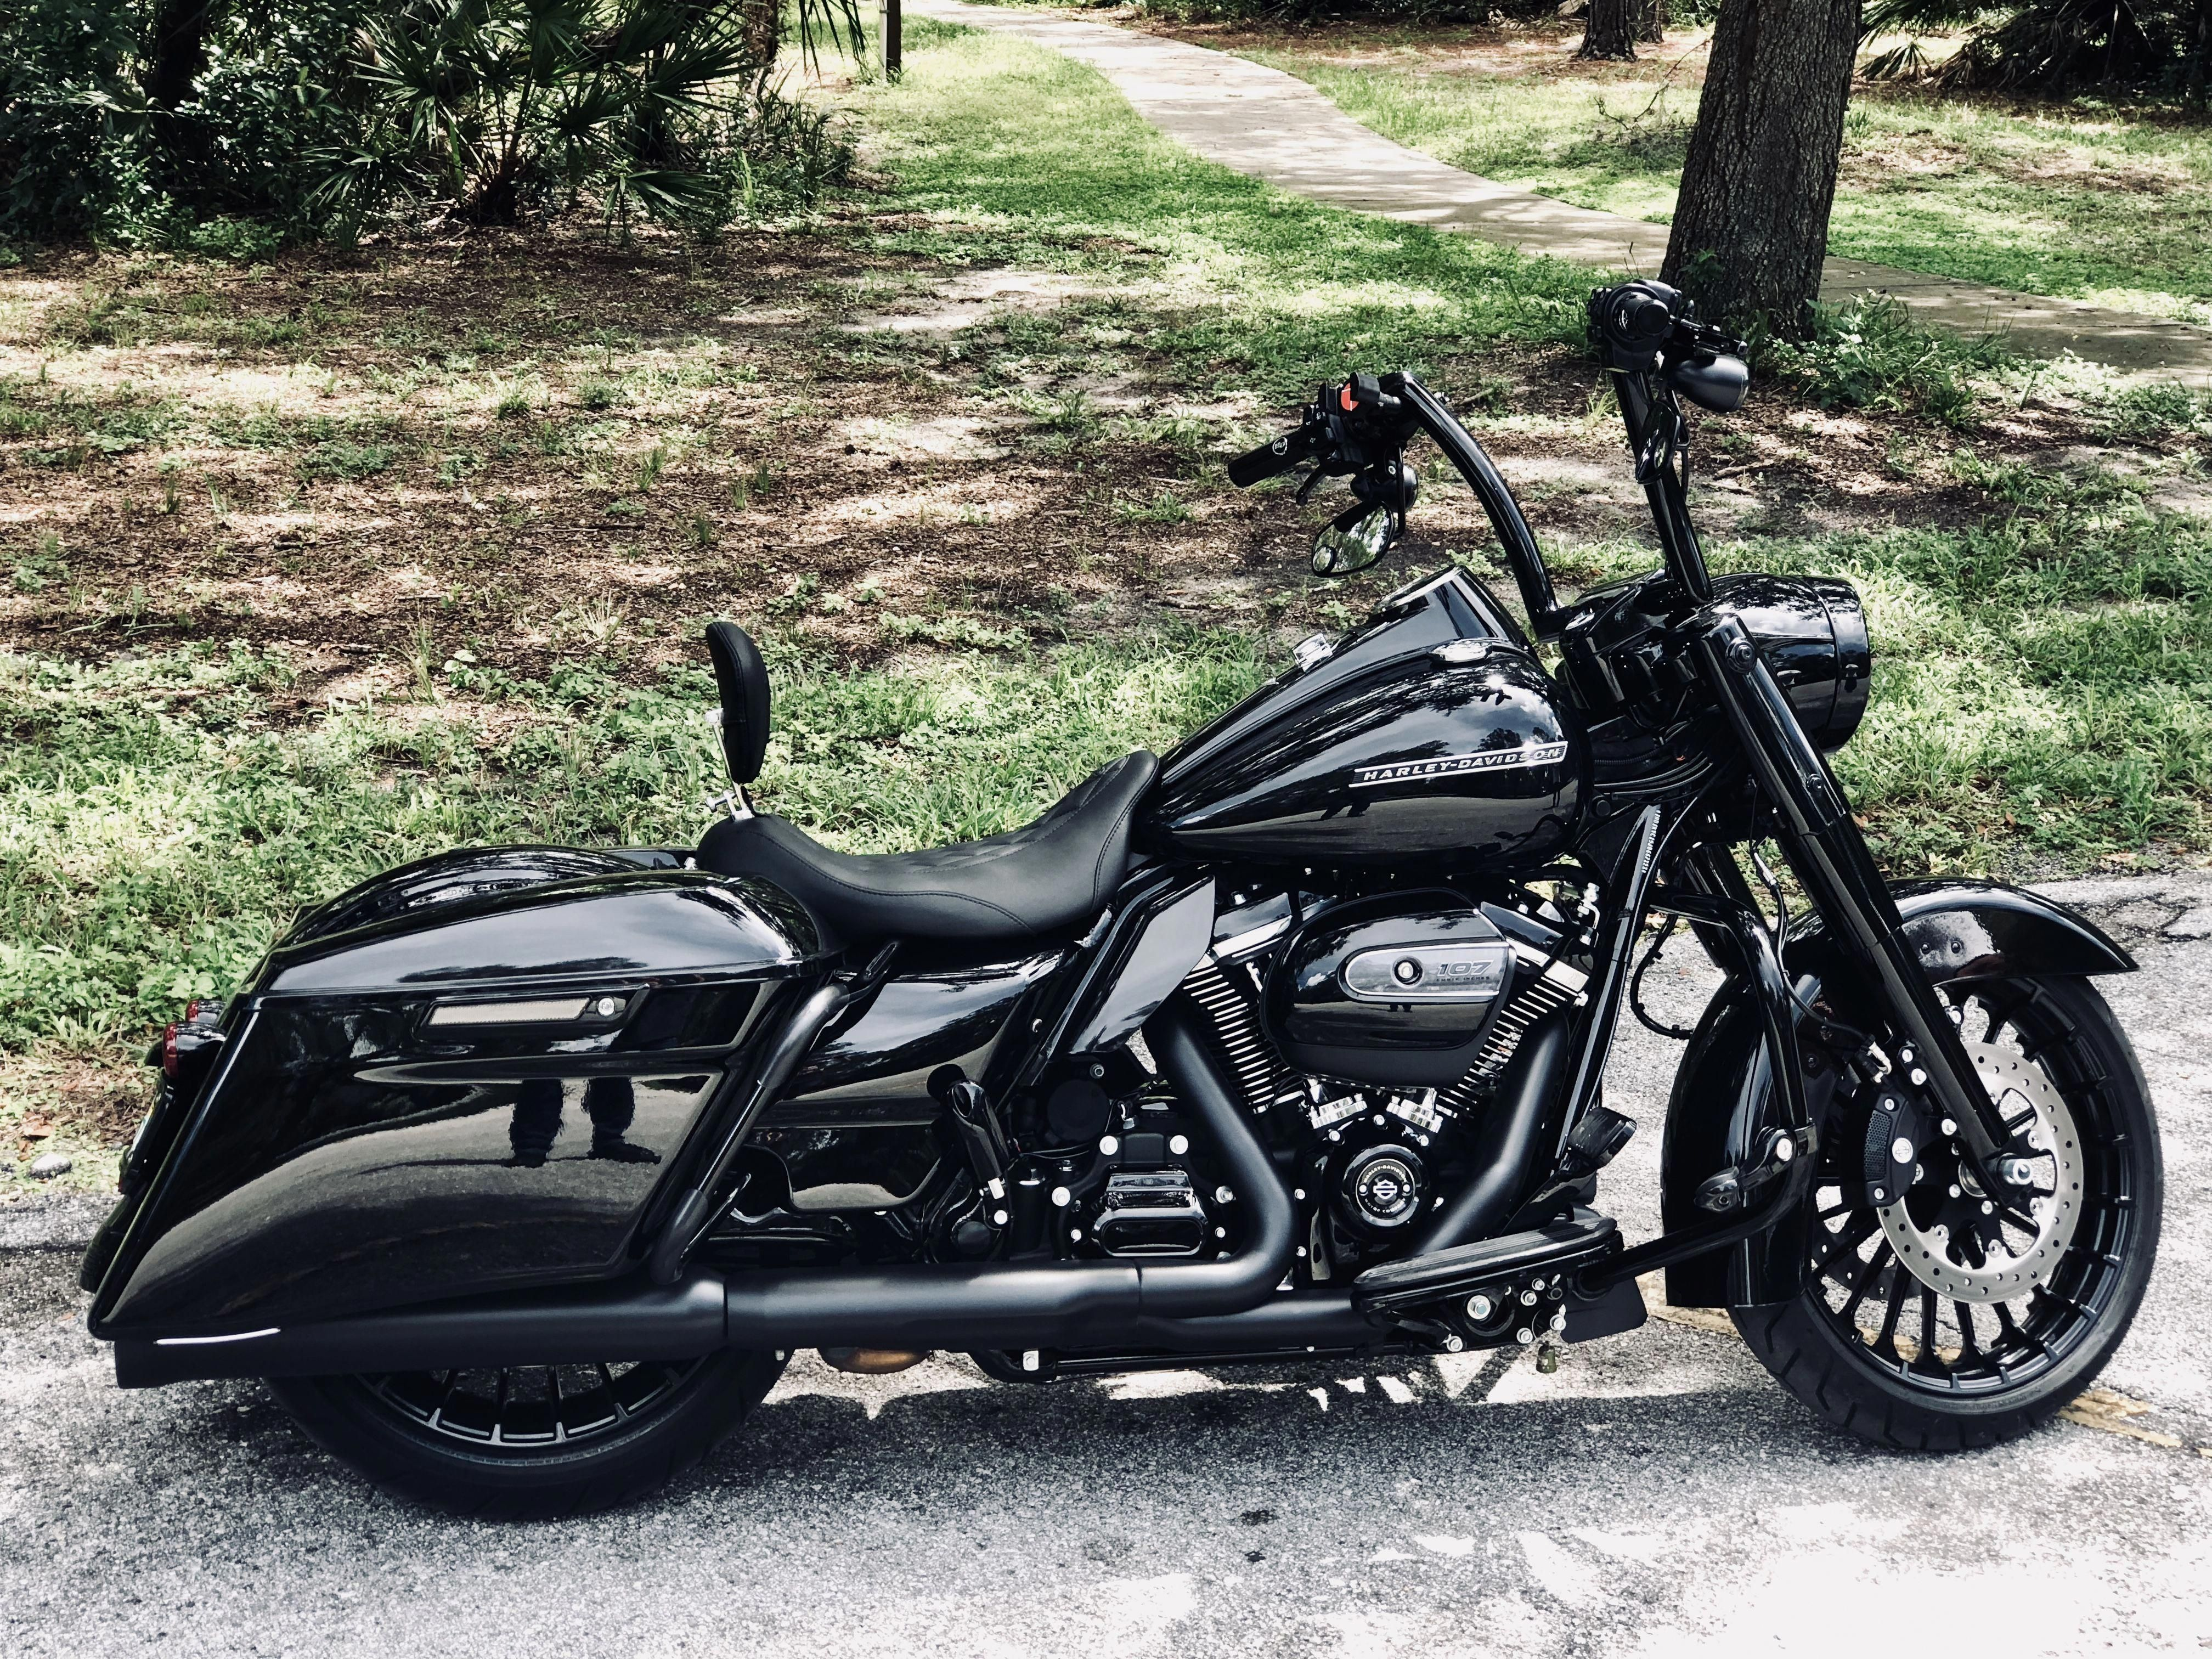 Harley 2018 Road King Special Bestofharleydavidsonstreetglide Harleydavidsonroadking Harley Davidson Motorcycles Road King Road King Harley Road King